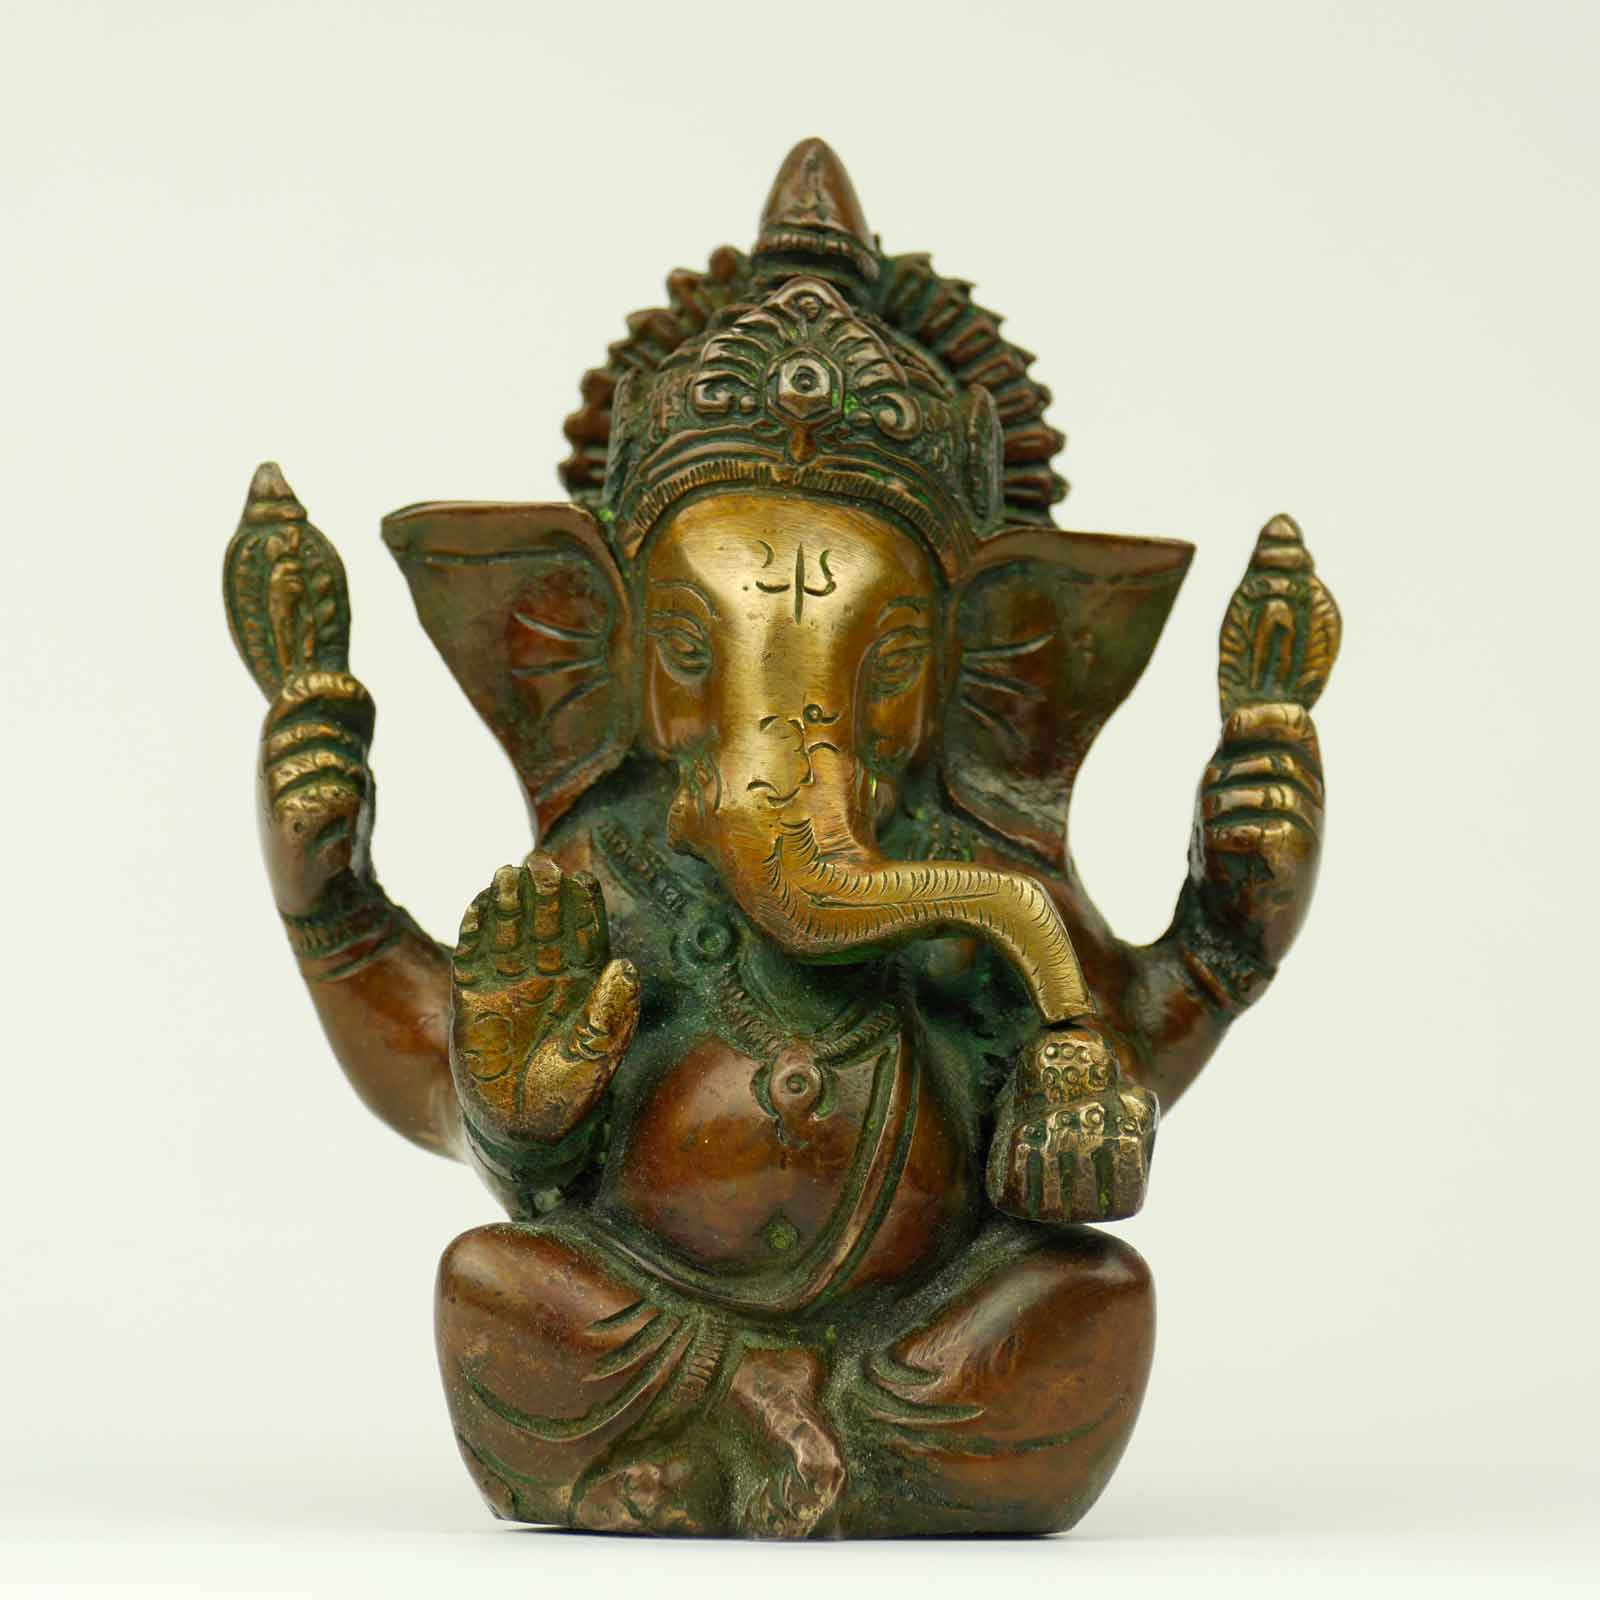 ganesha statue bronze arbeit skulptur nepal handwerk unikat indien ebay. Black Bedroom Furniture Sets. Home Design Ideas